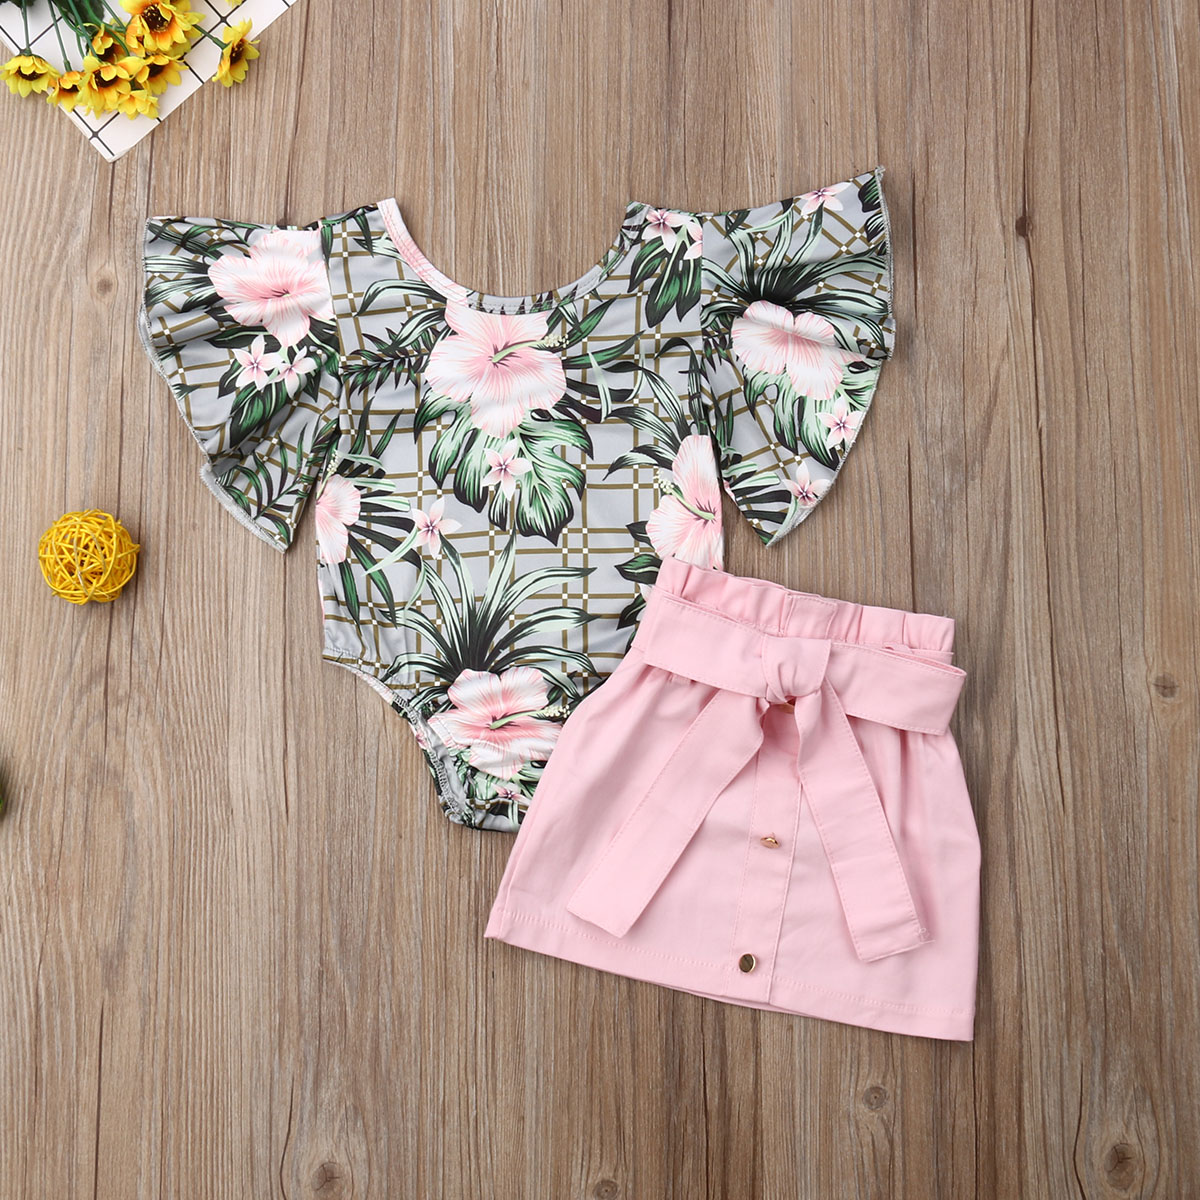 Pudcoco Newest Fashion Toddler Baby Girl Clothes Flower Print Ruffle Sleeve Romper Tops Mini Skirt 2Pcs Outfits Clothes Summer